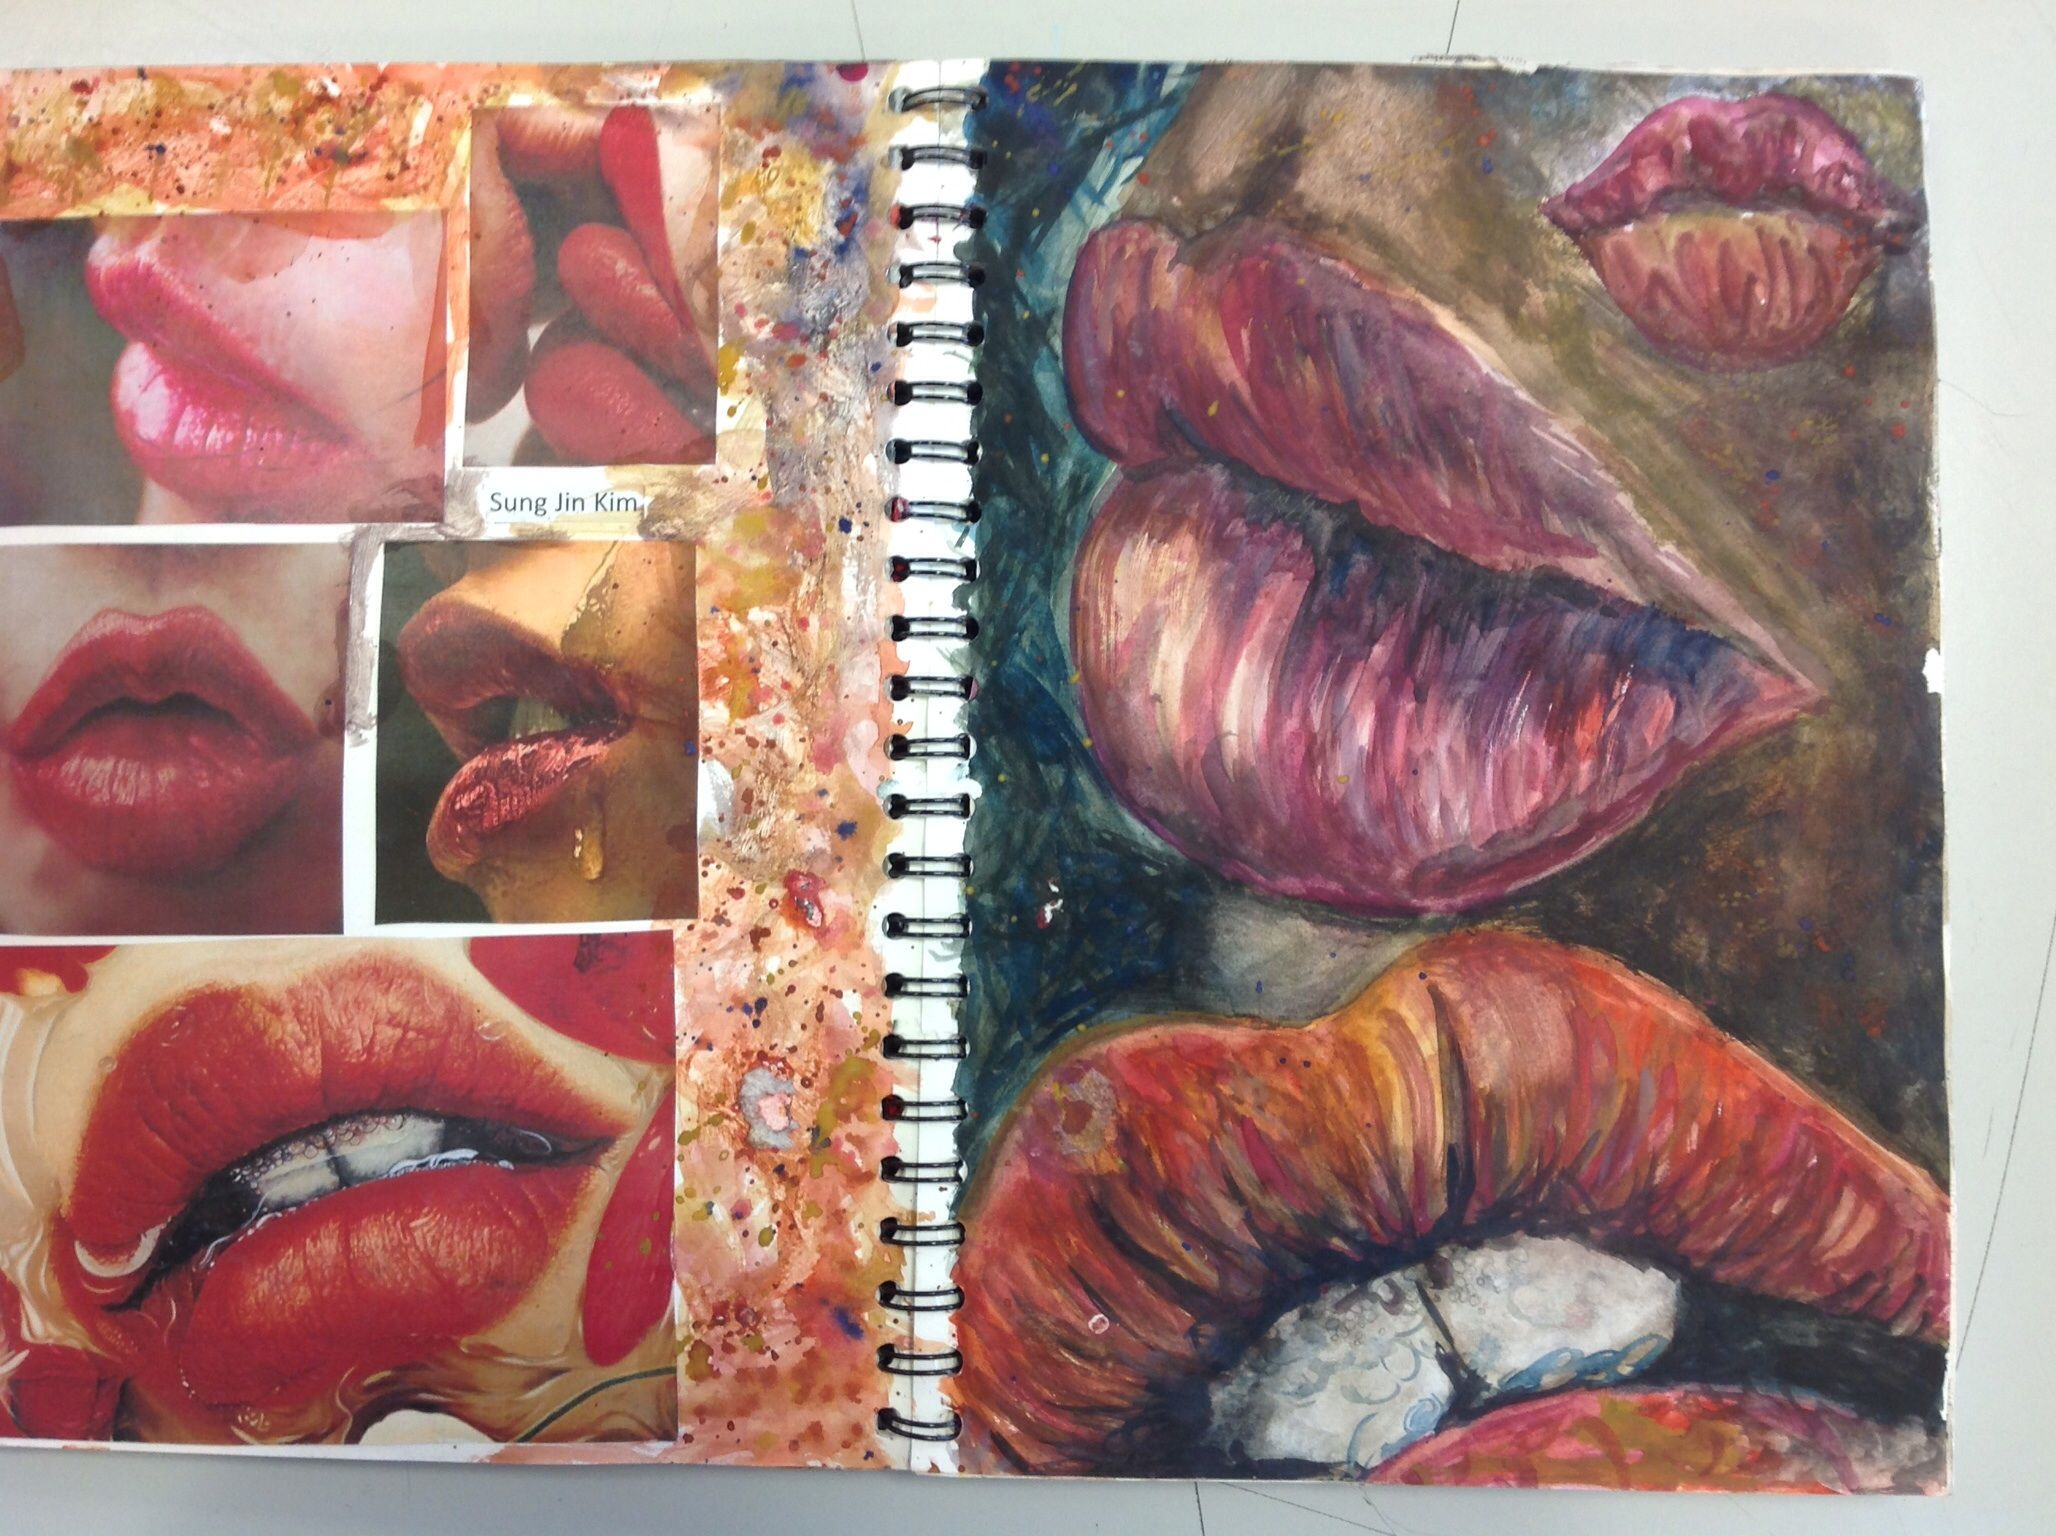 nuggwifee☽ ☼☾ a r t sketchbooks lips studies alzheimer s and dementia ridden individuals lack a voice they have an inner voice which is full and vibrant and ready